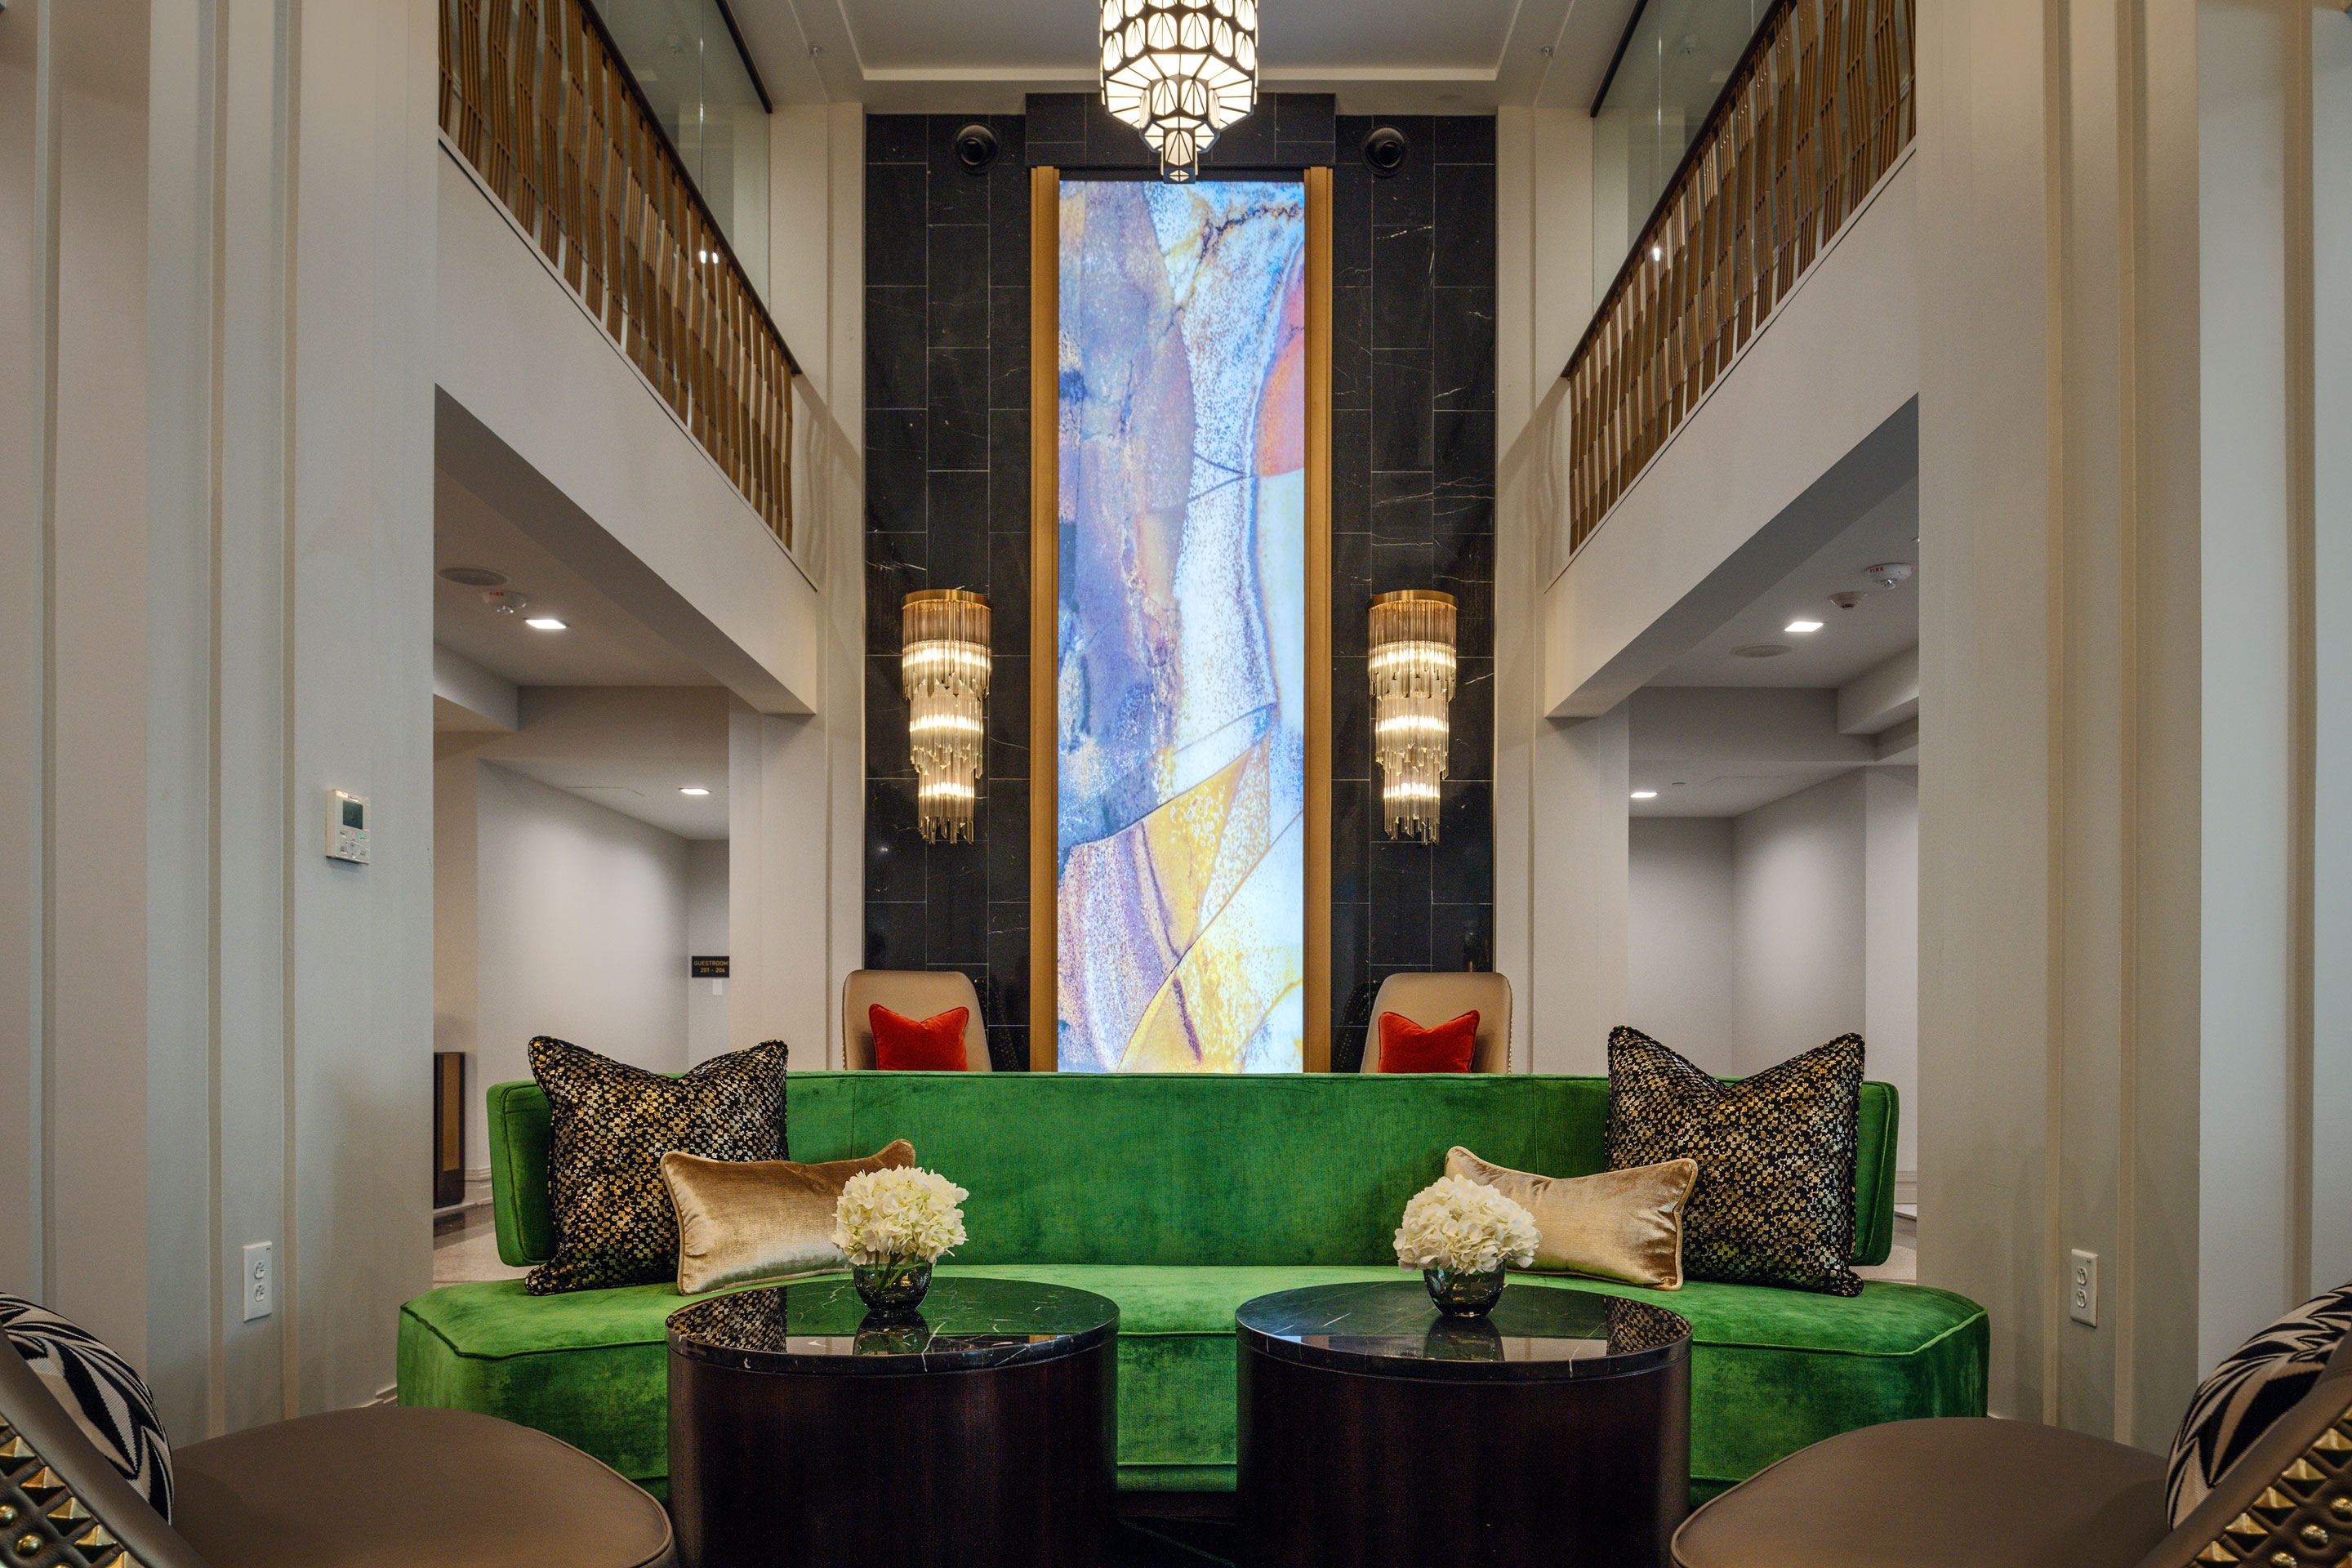 Art Deco Design Cuisine This Revamped Art Deco Hotel Is Emblematic Of The New Tulsa Fortune